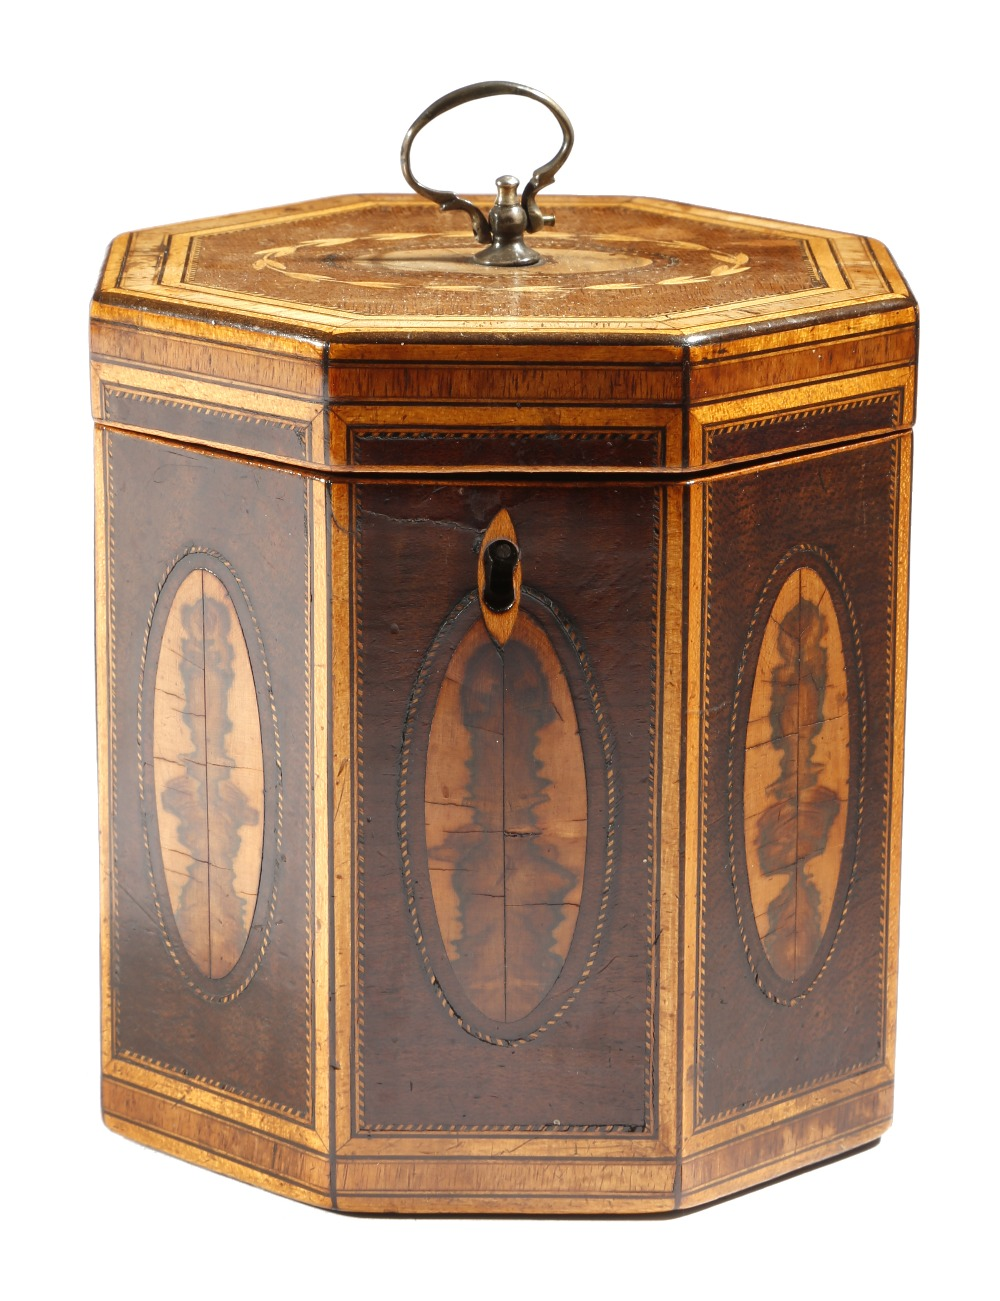 Lot 44 - A George III harewood octagonal tea caddy, inlaid with stringing and tulipwood and planewood